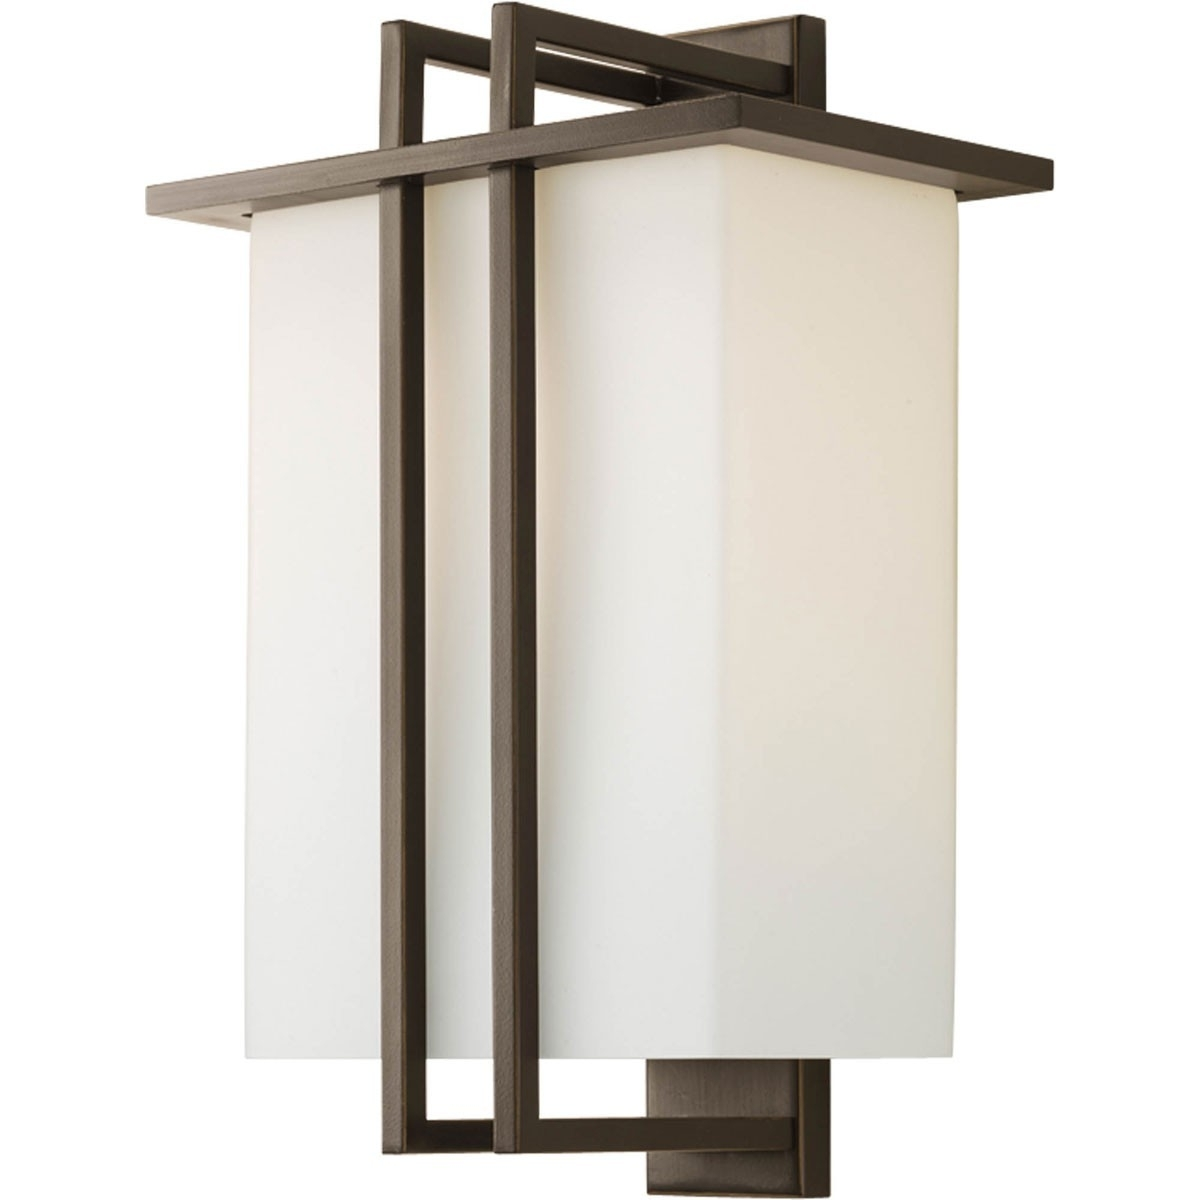 Outdoor Large Wall Lantern With Etched Opal Shades – Progress With Regard To Popular Large Outdoor Wall Light Fixtures (View 2 of 20)